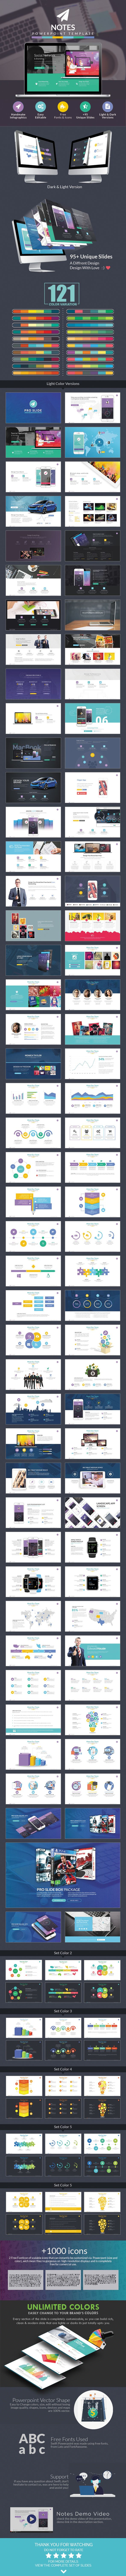 The 25 best cool powerpoint templates ideas on pinterest notes business webinar powerpoint template toneelgroepblik Image collections